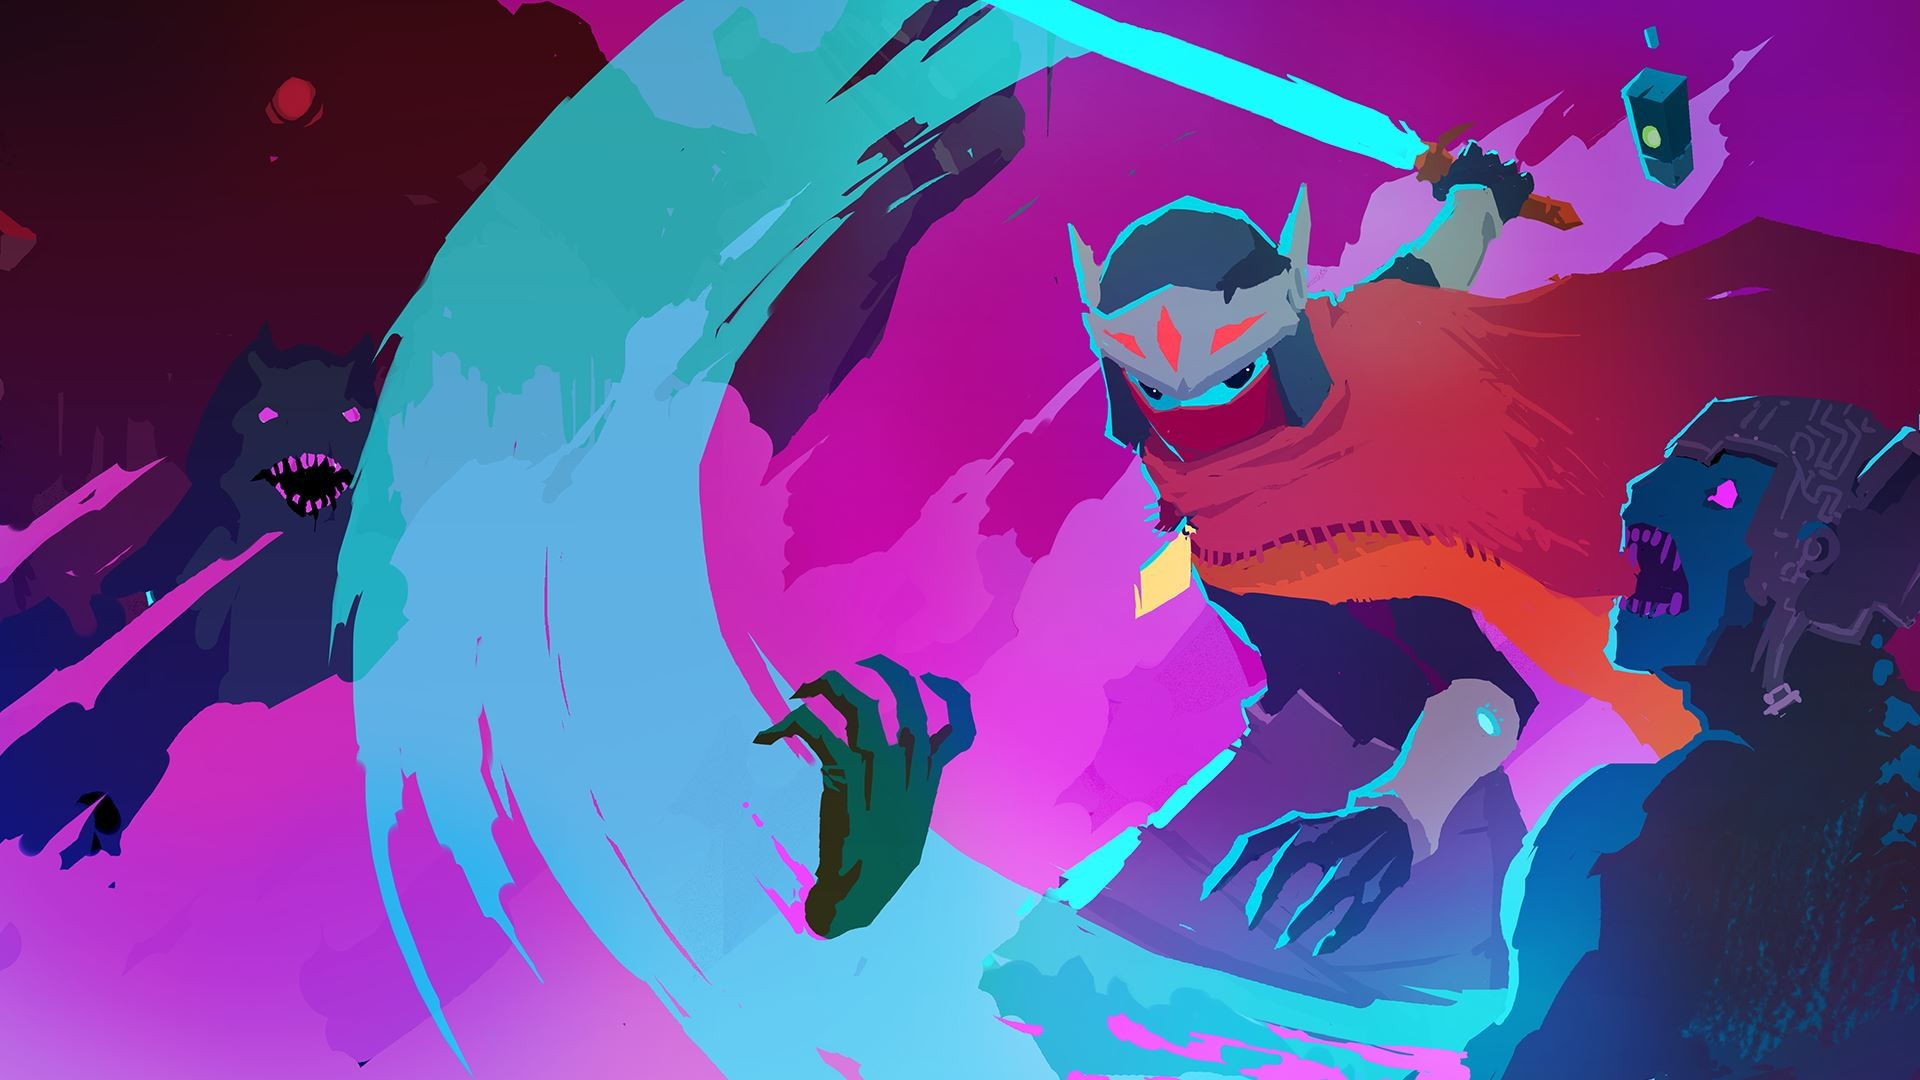 Hyper Light Drifter Wallpaper Download Free Beautiful High